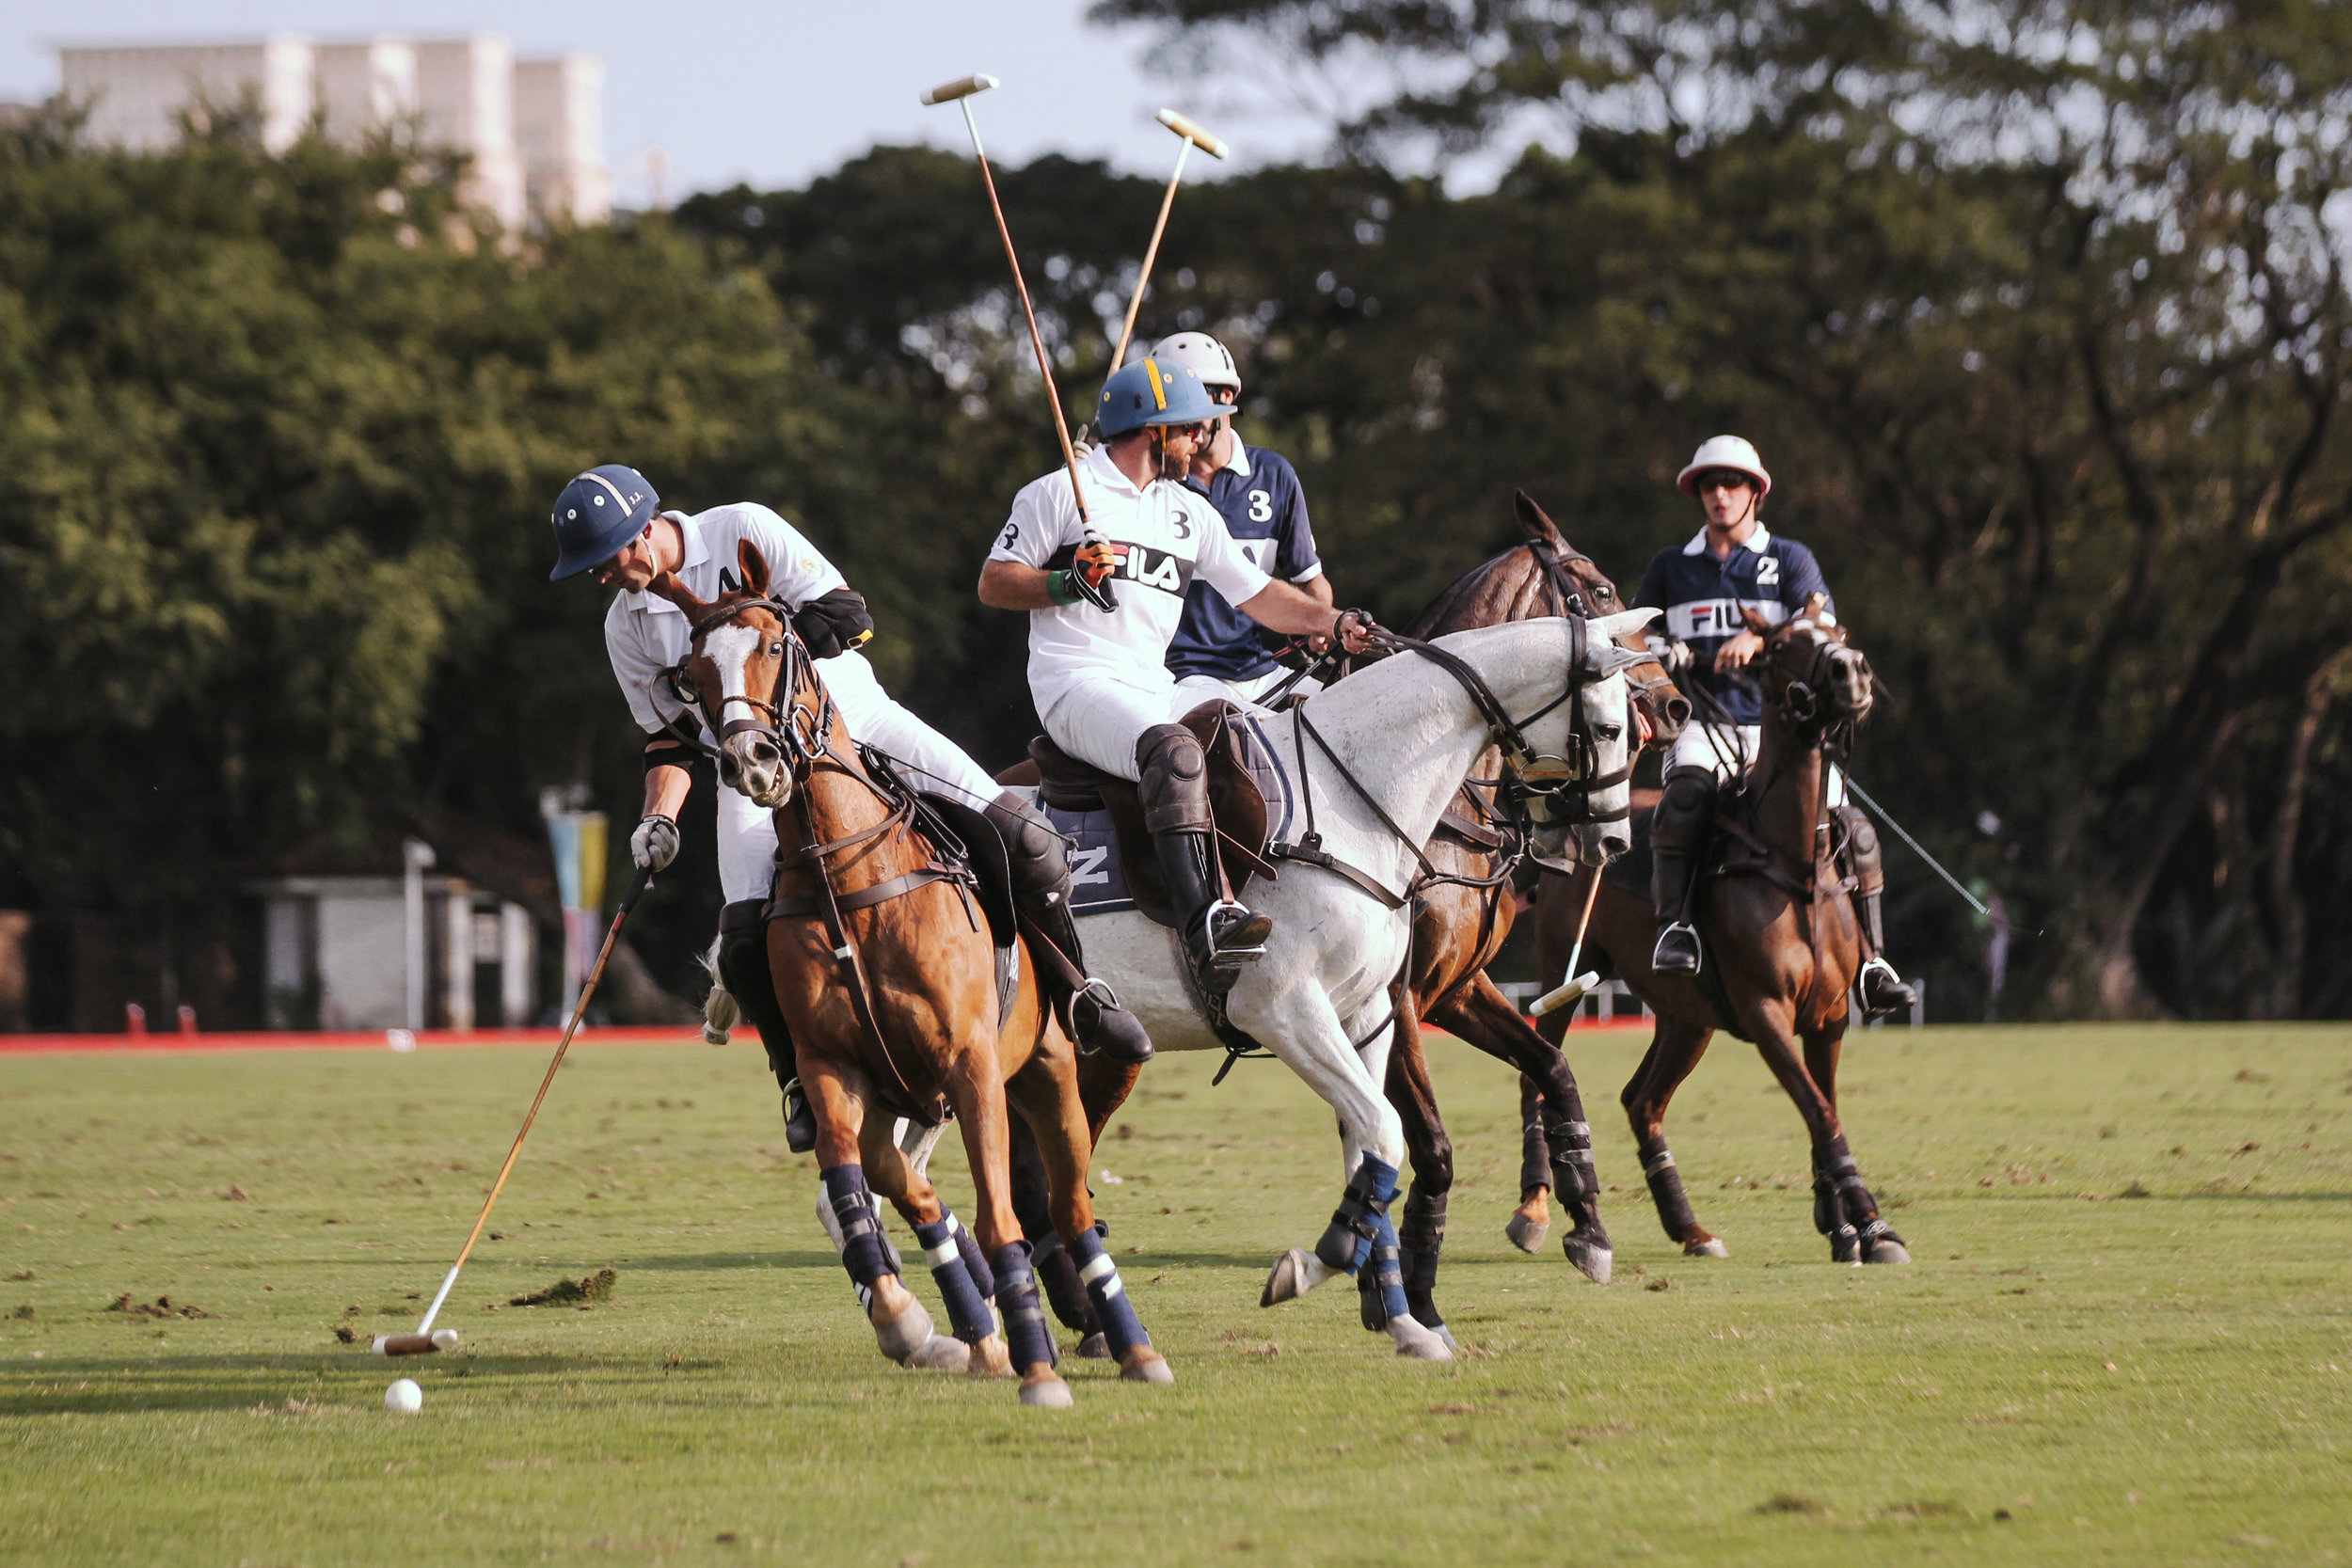 FILA Polo Cup 2017_High Goal-27.jpg